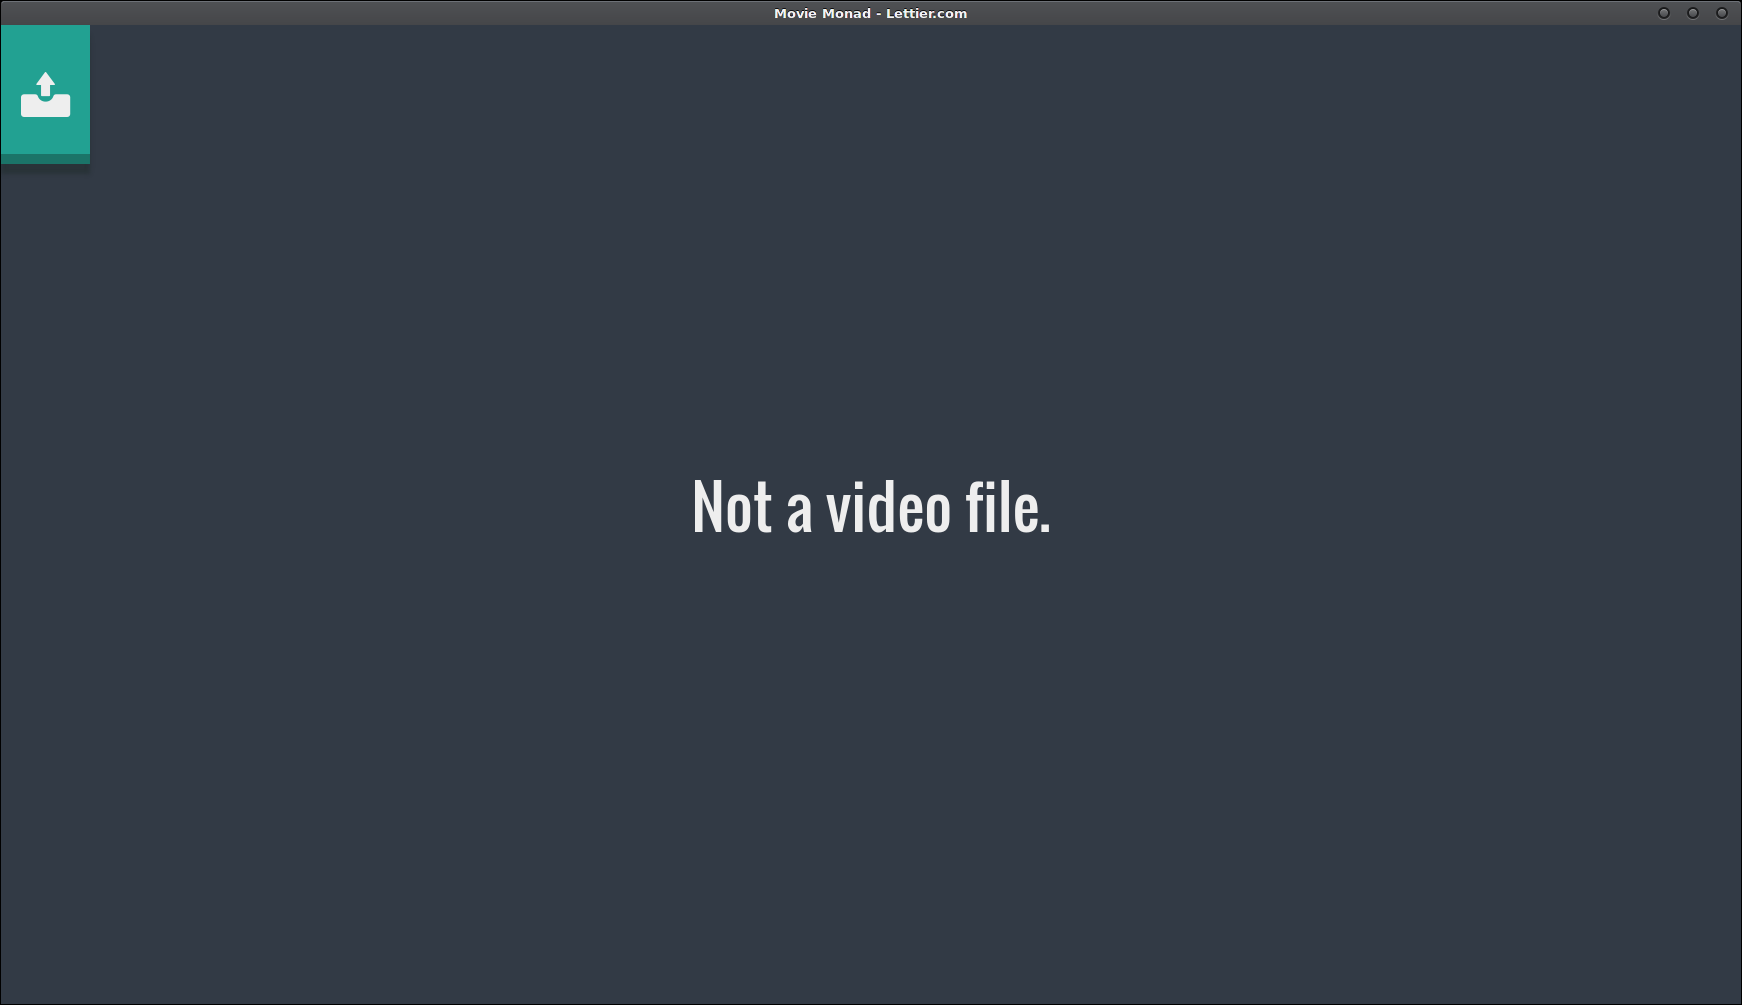 Not a video file.